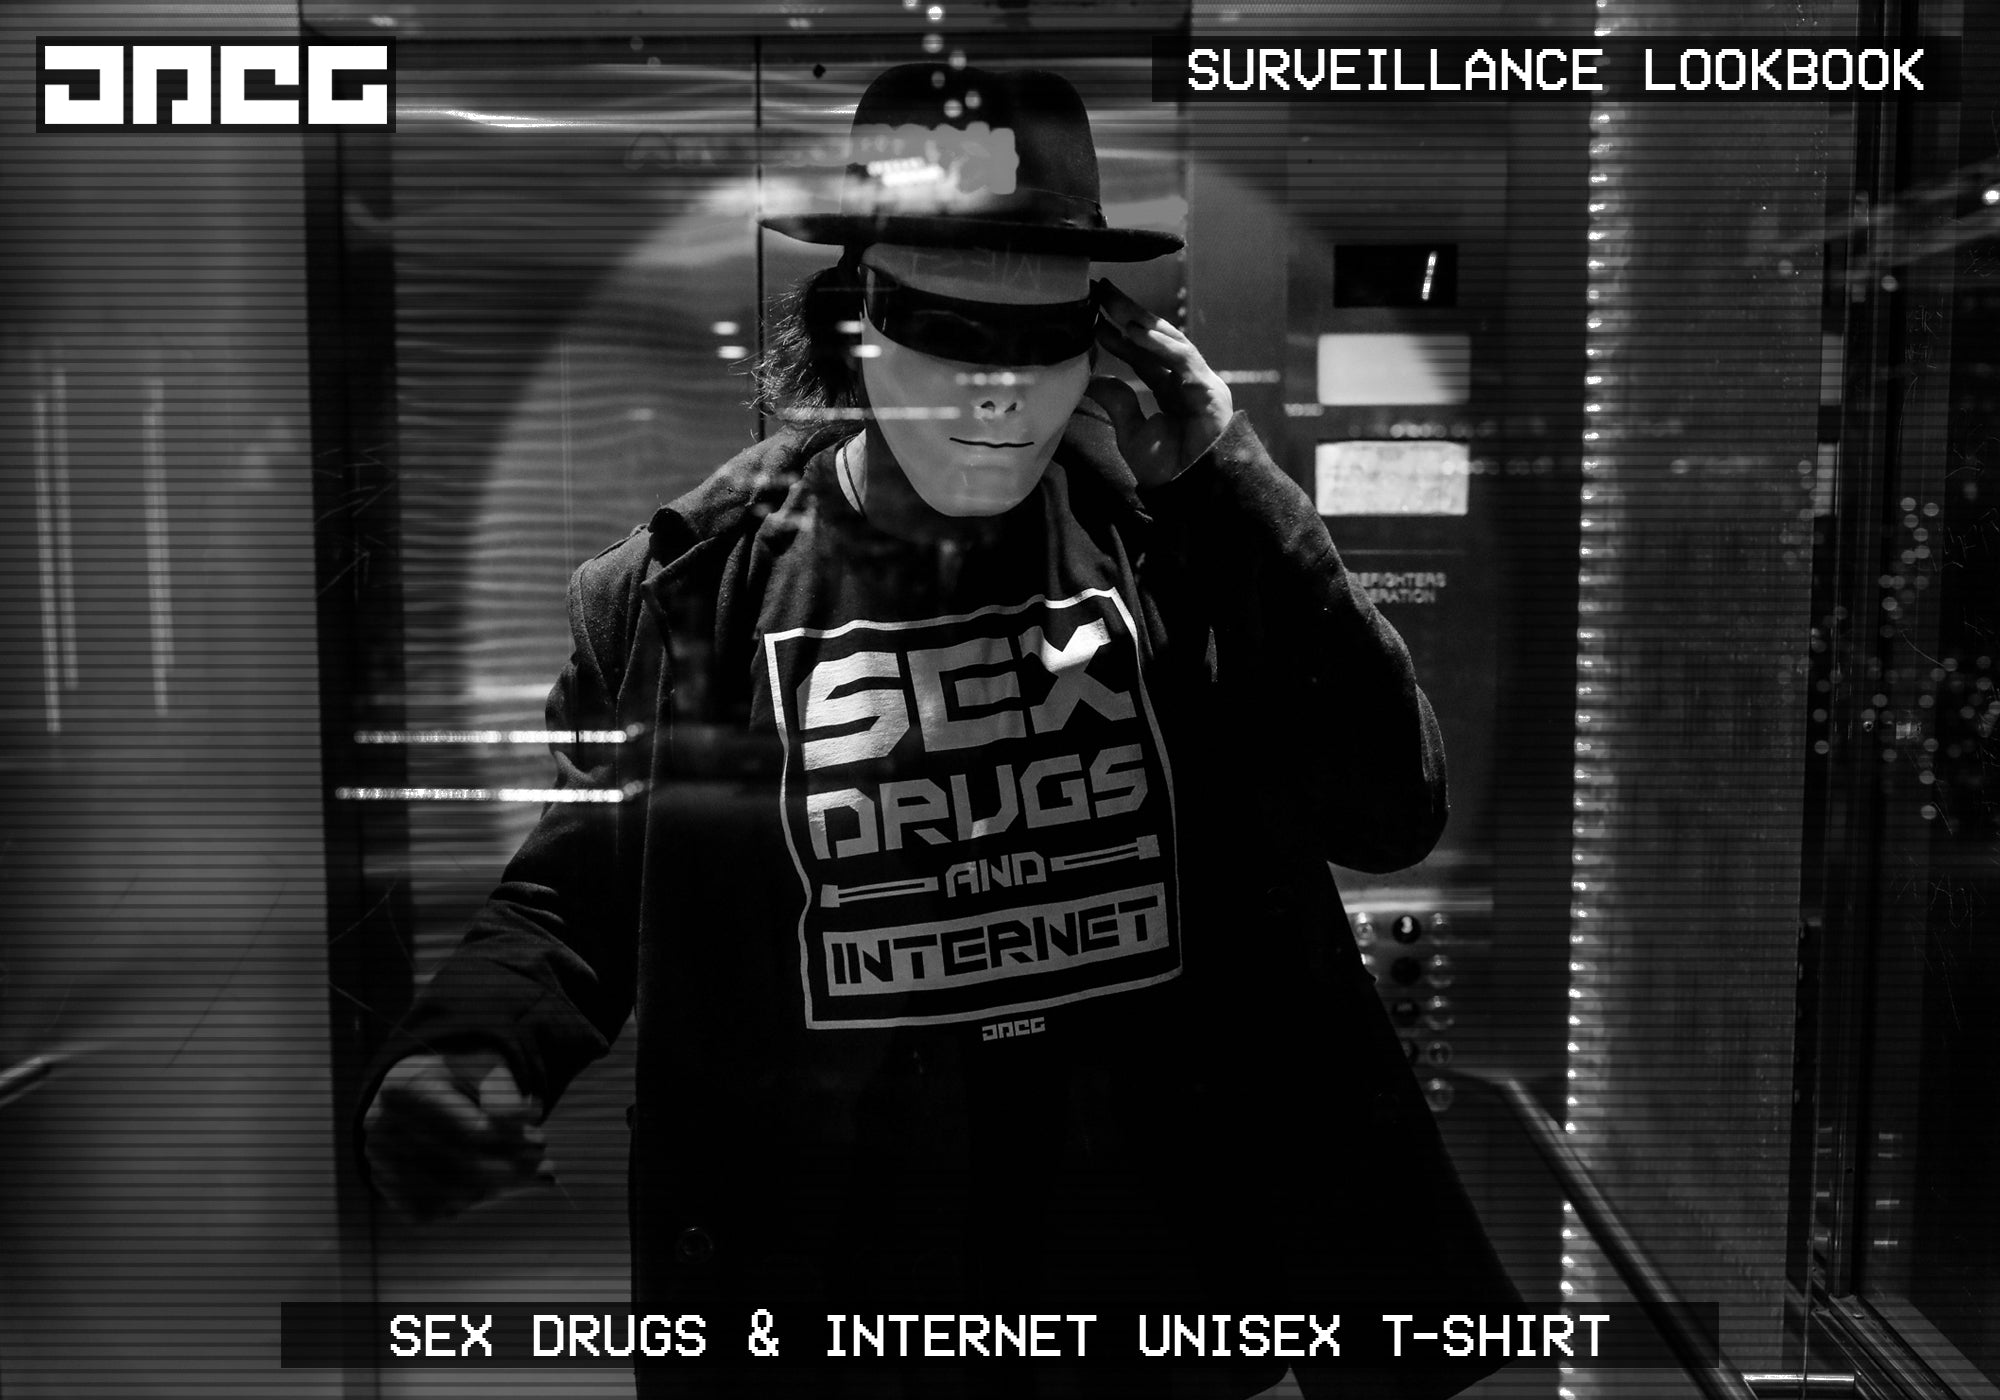 jpeg lookbook surveillance webstore cyber goth cult shop 10